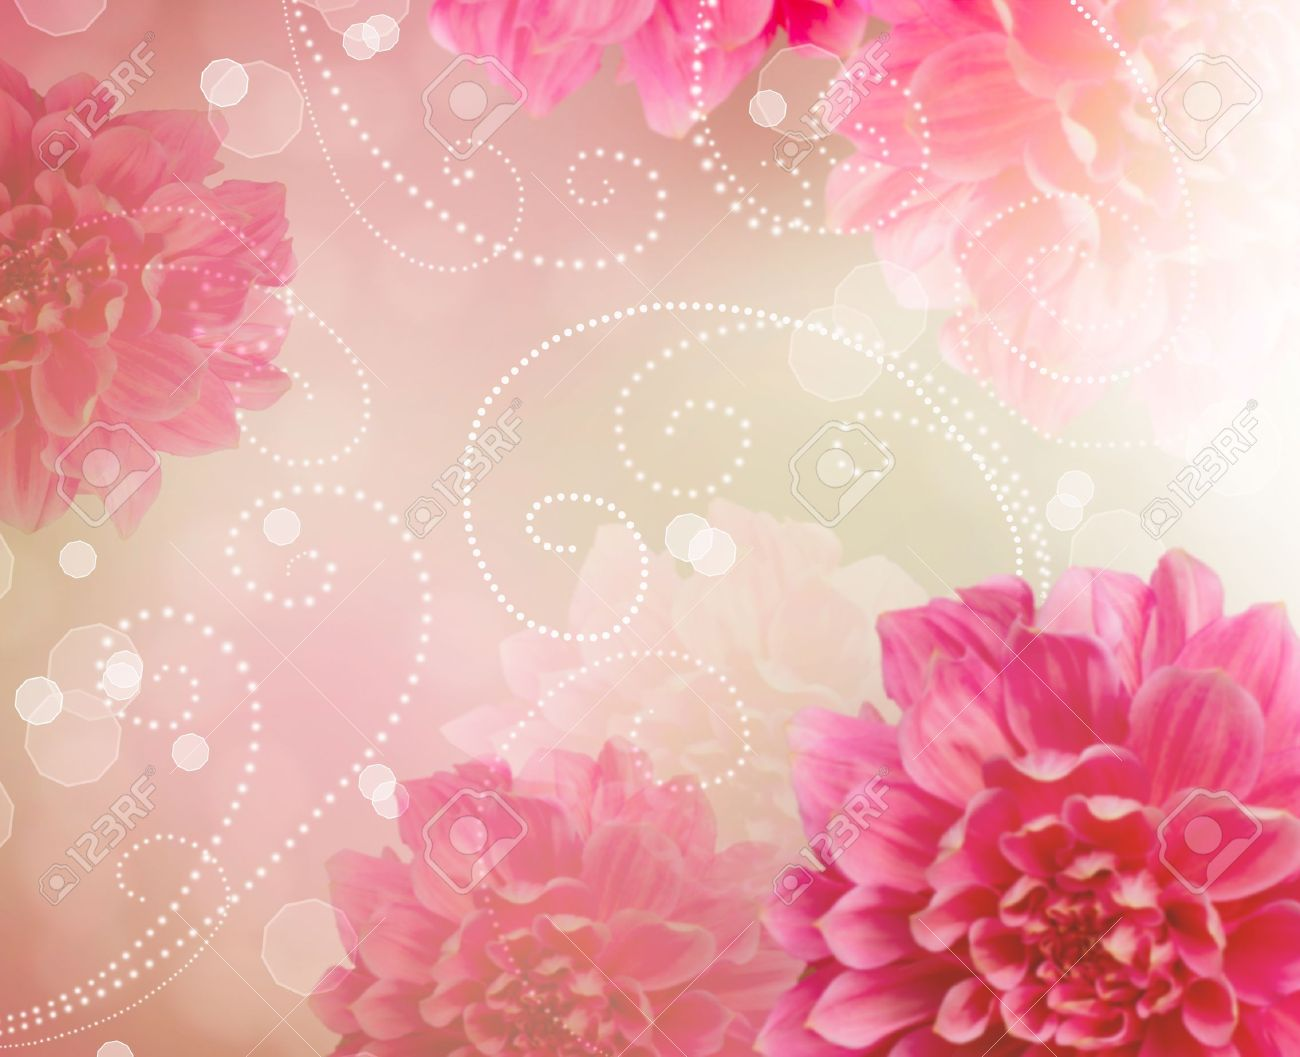 Flowers Abstract Design Art Background Floral Wallpaper Stock